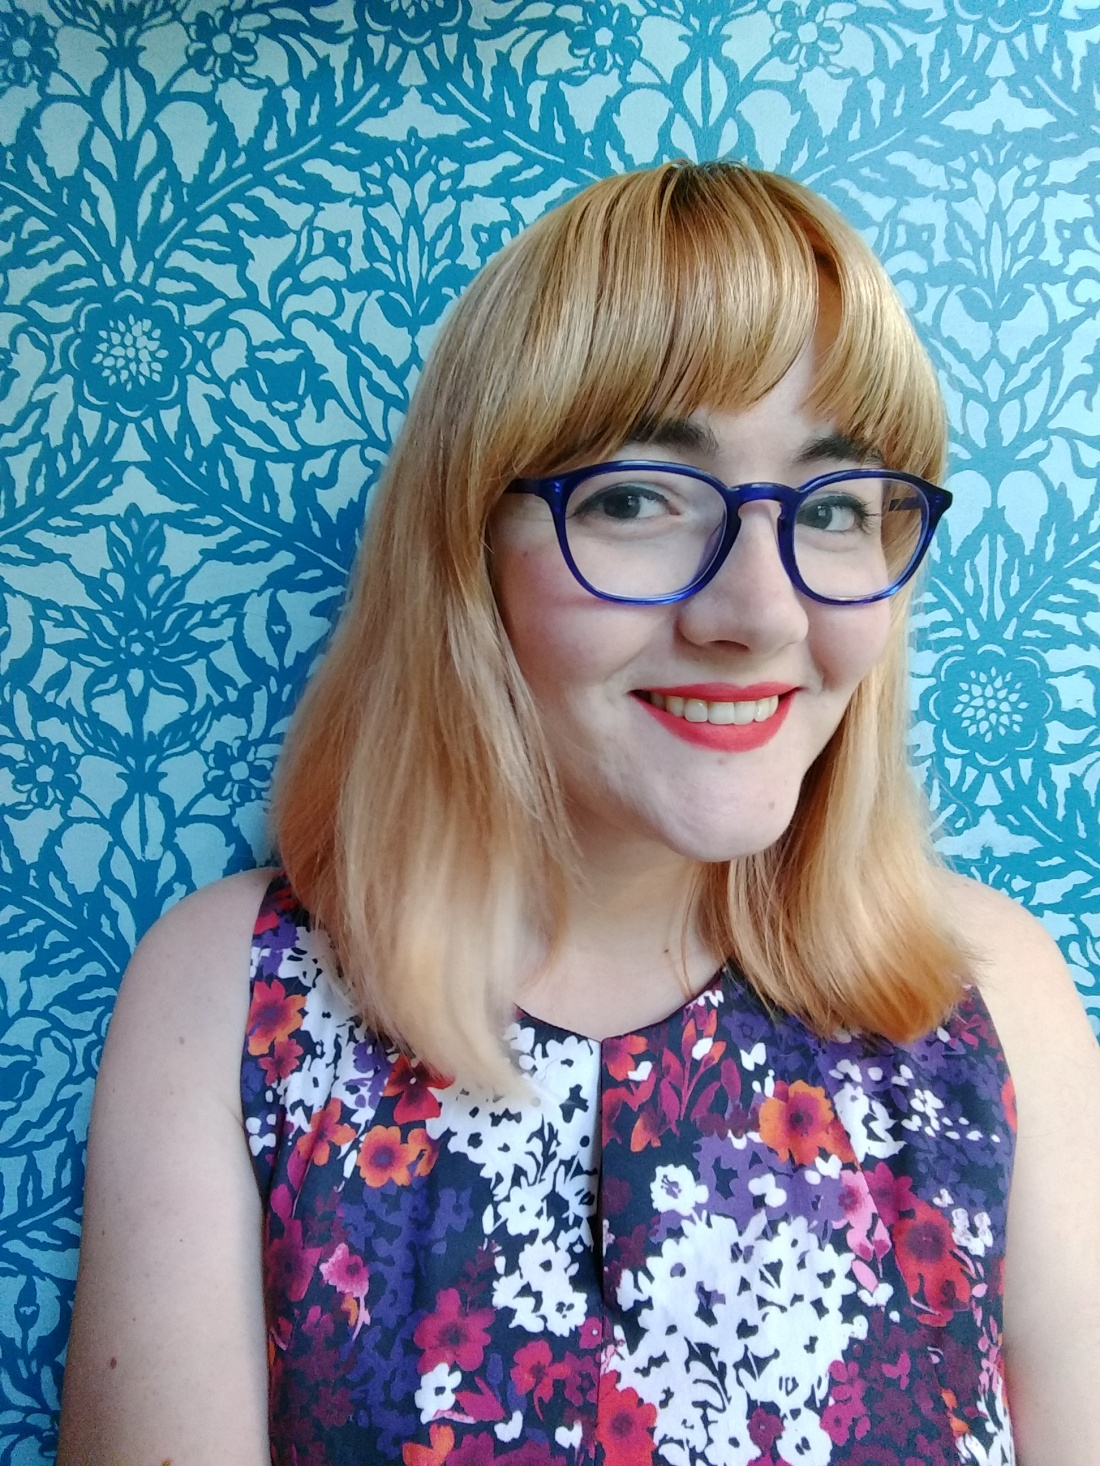 Me wearing a purple floral dress against a blue patterned background. My hair has faded back to blonde.